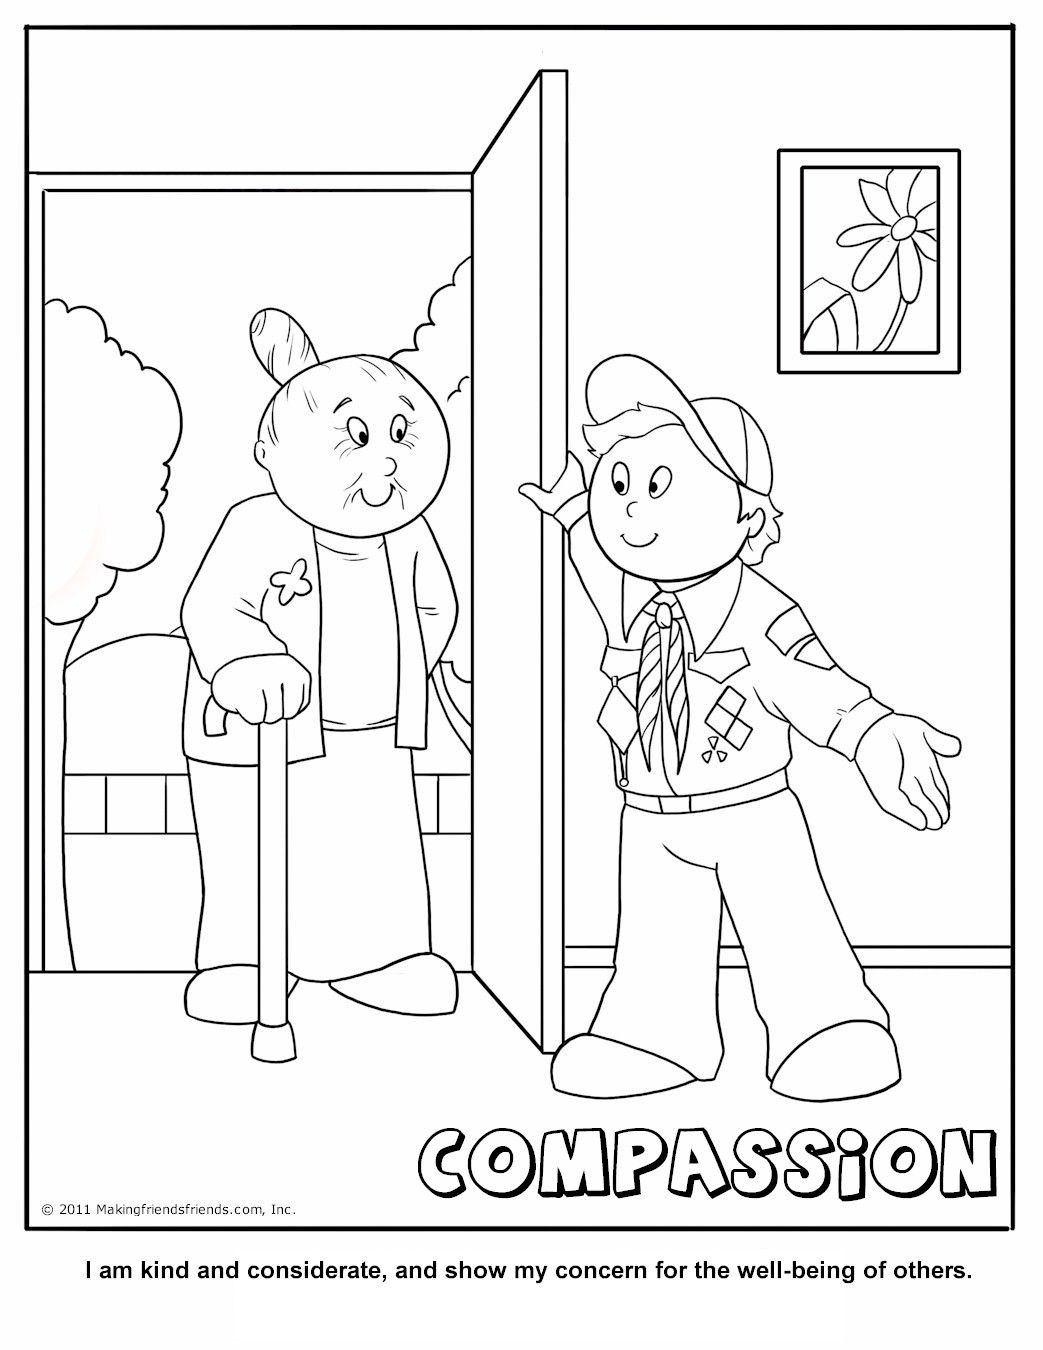 The 30 Best Ideas for Boy Scout Coloring Pages - Home ...